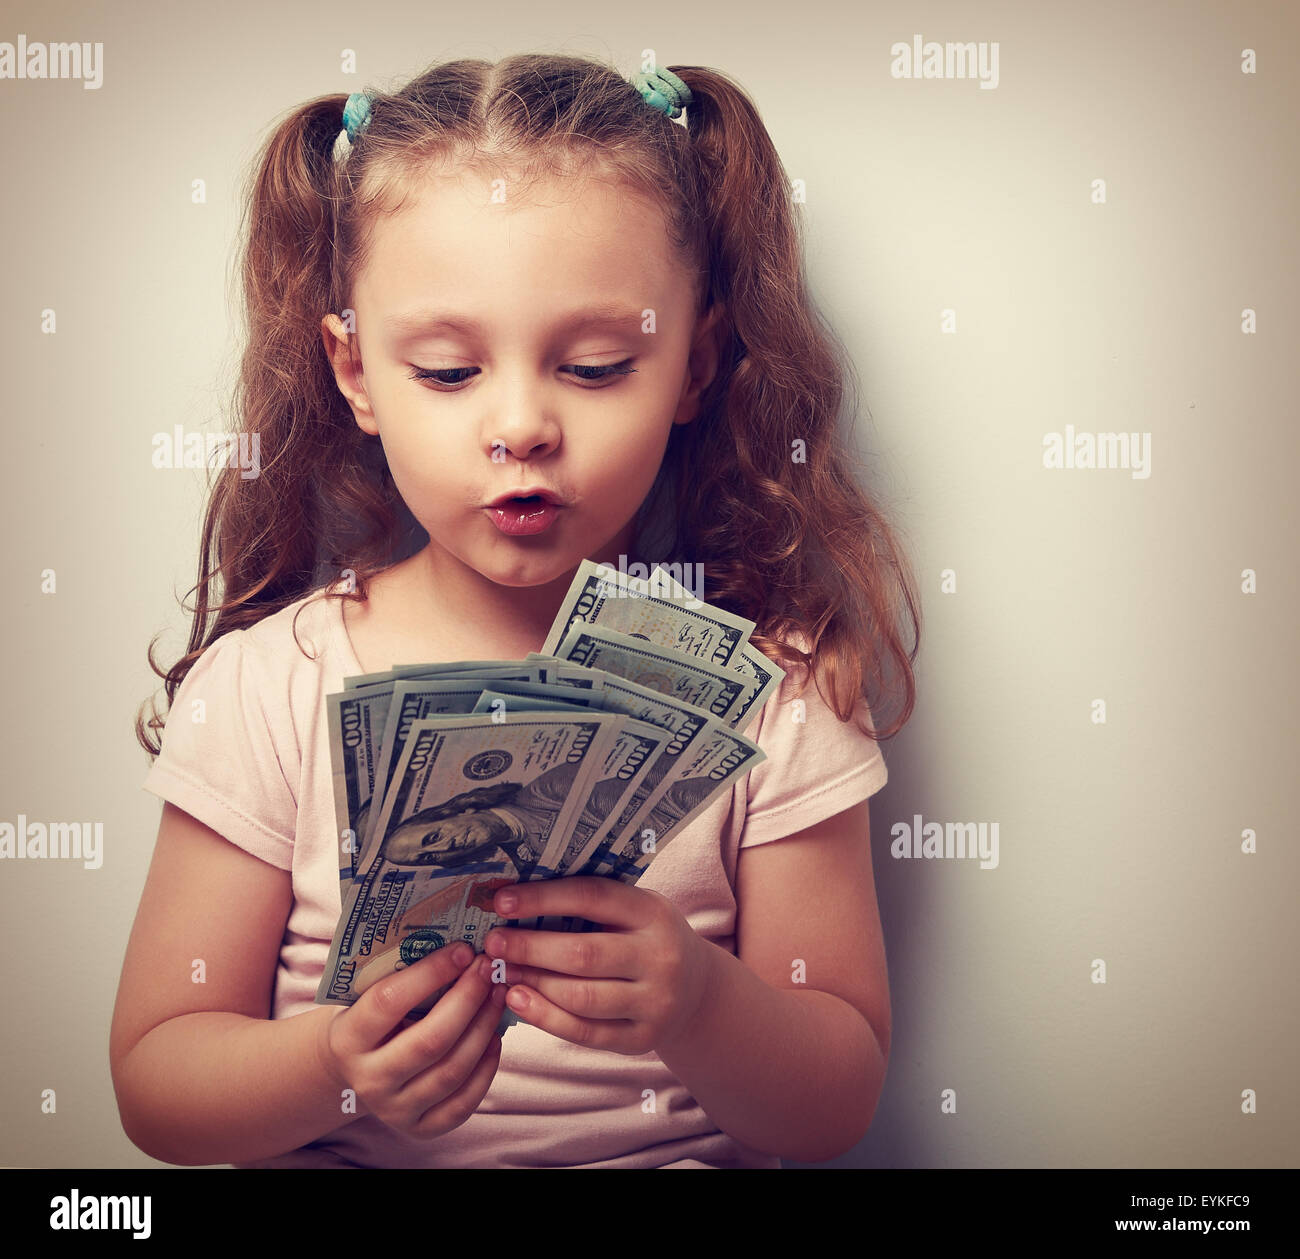 Fun grimacing kid girl looking and counting money in the hands. Vintage closeup portrait - Stock Image